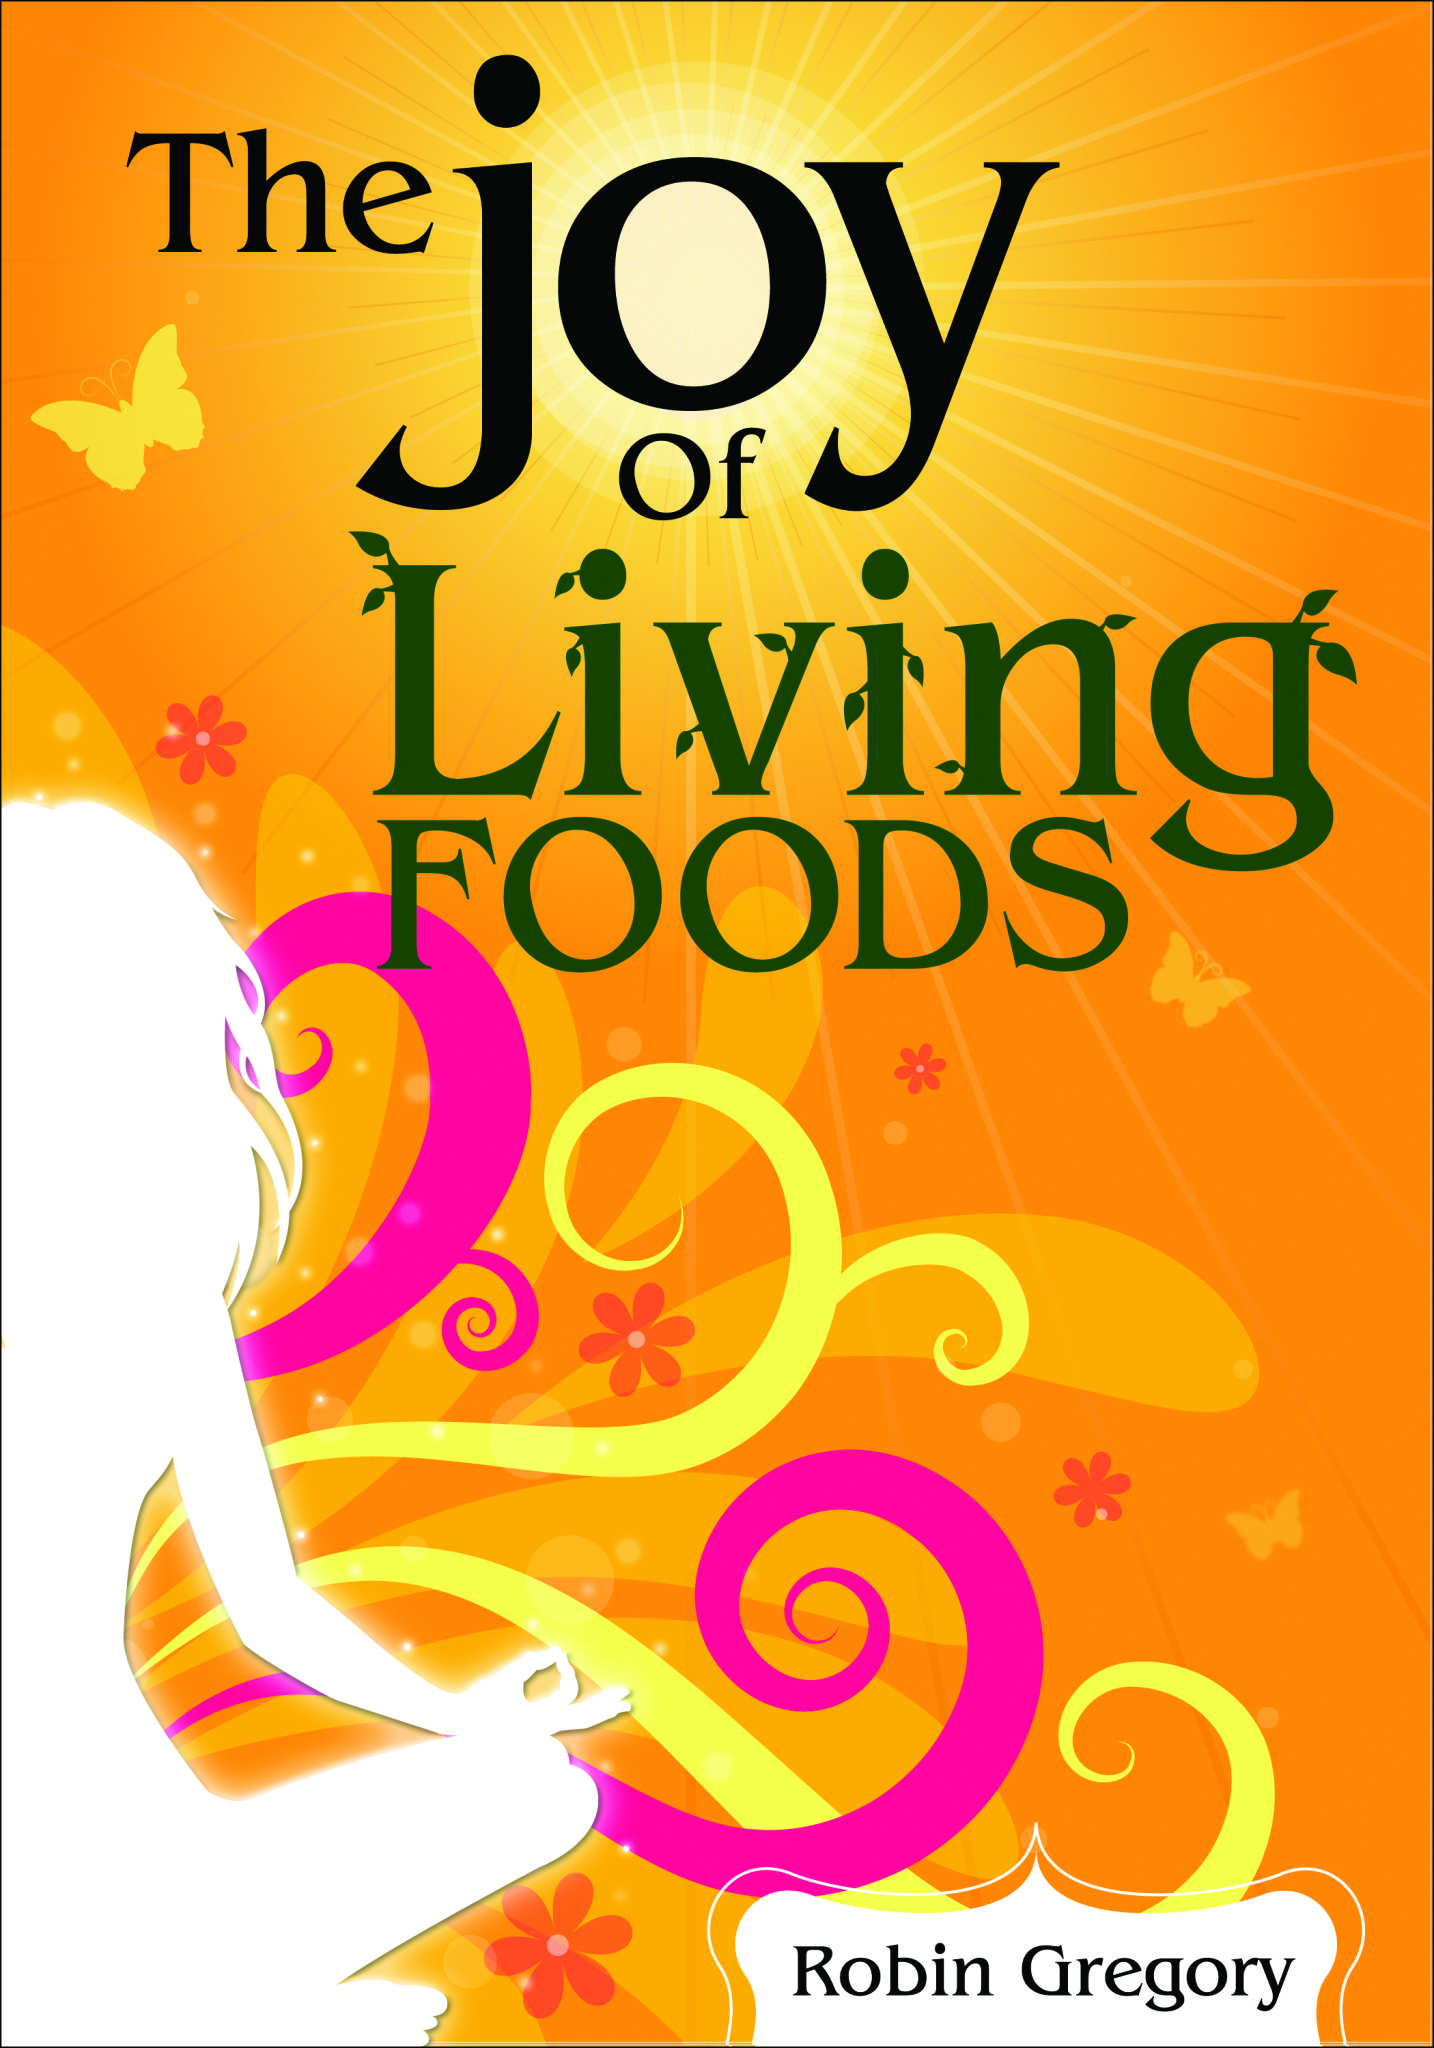 The joy of living foods a raw foods recipe bookrobins key get my raw foods recipe book on amazon forumfinder Gallery